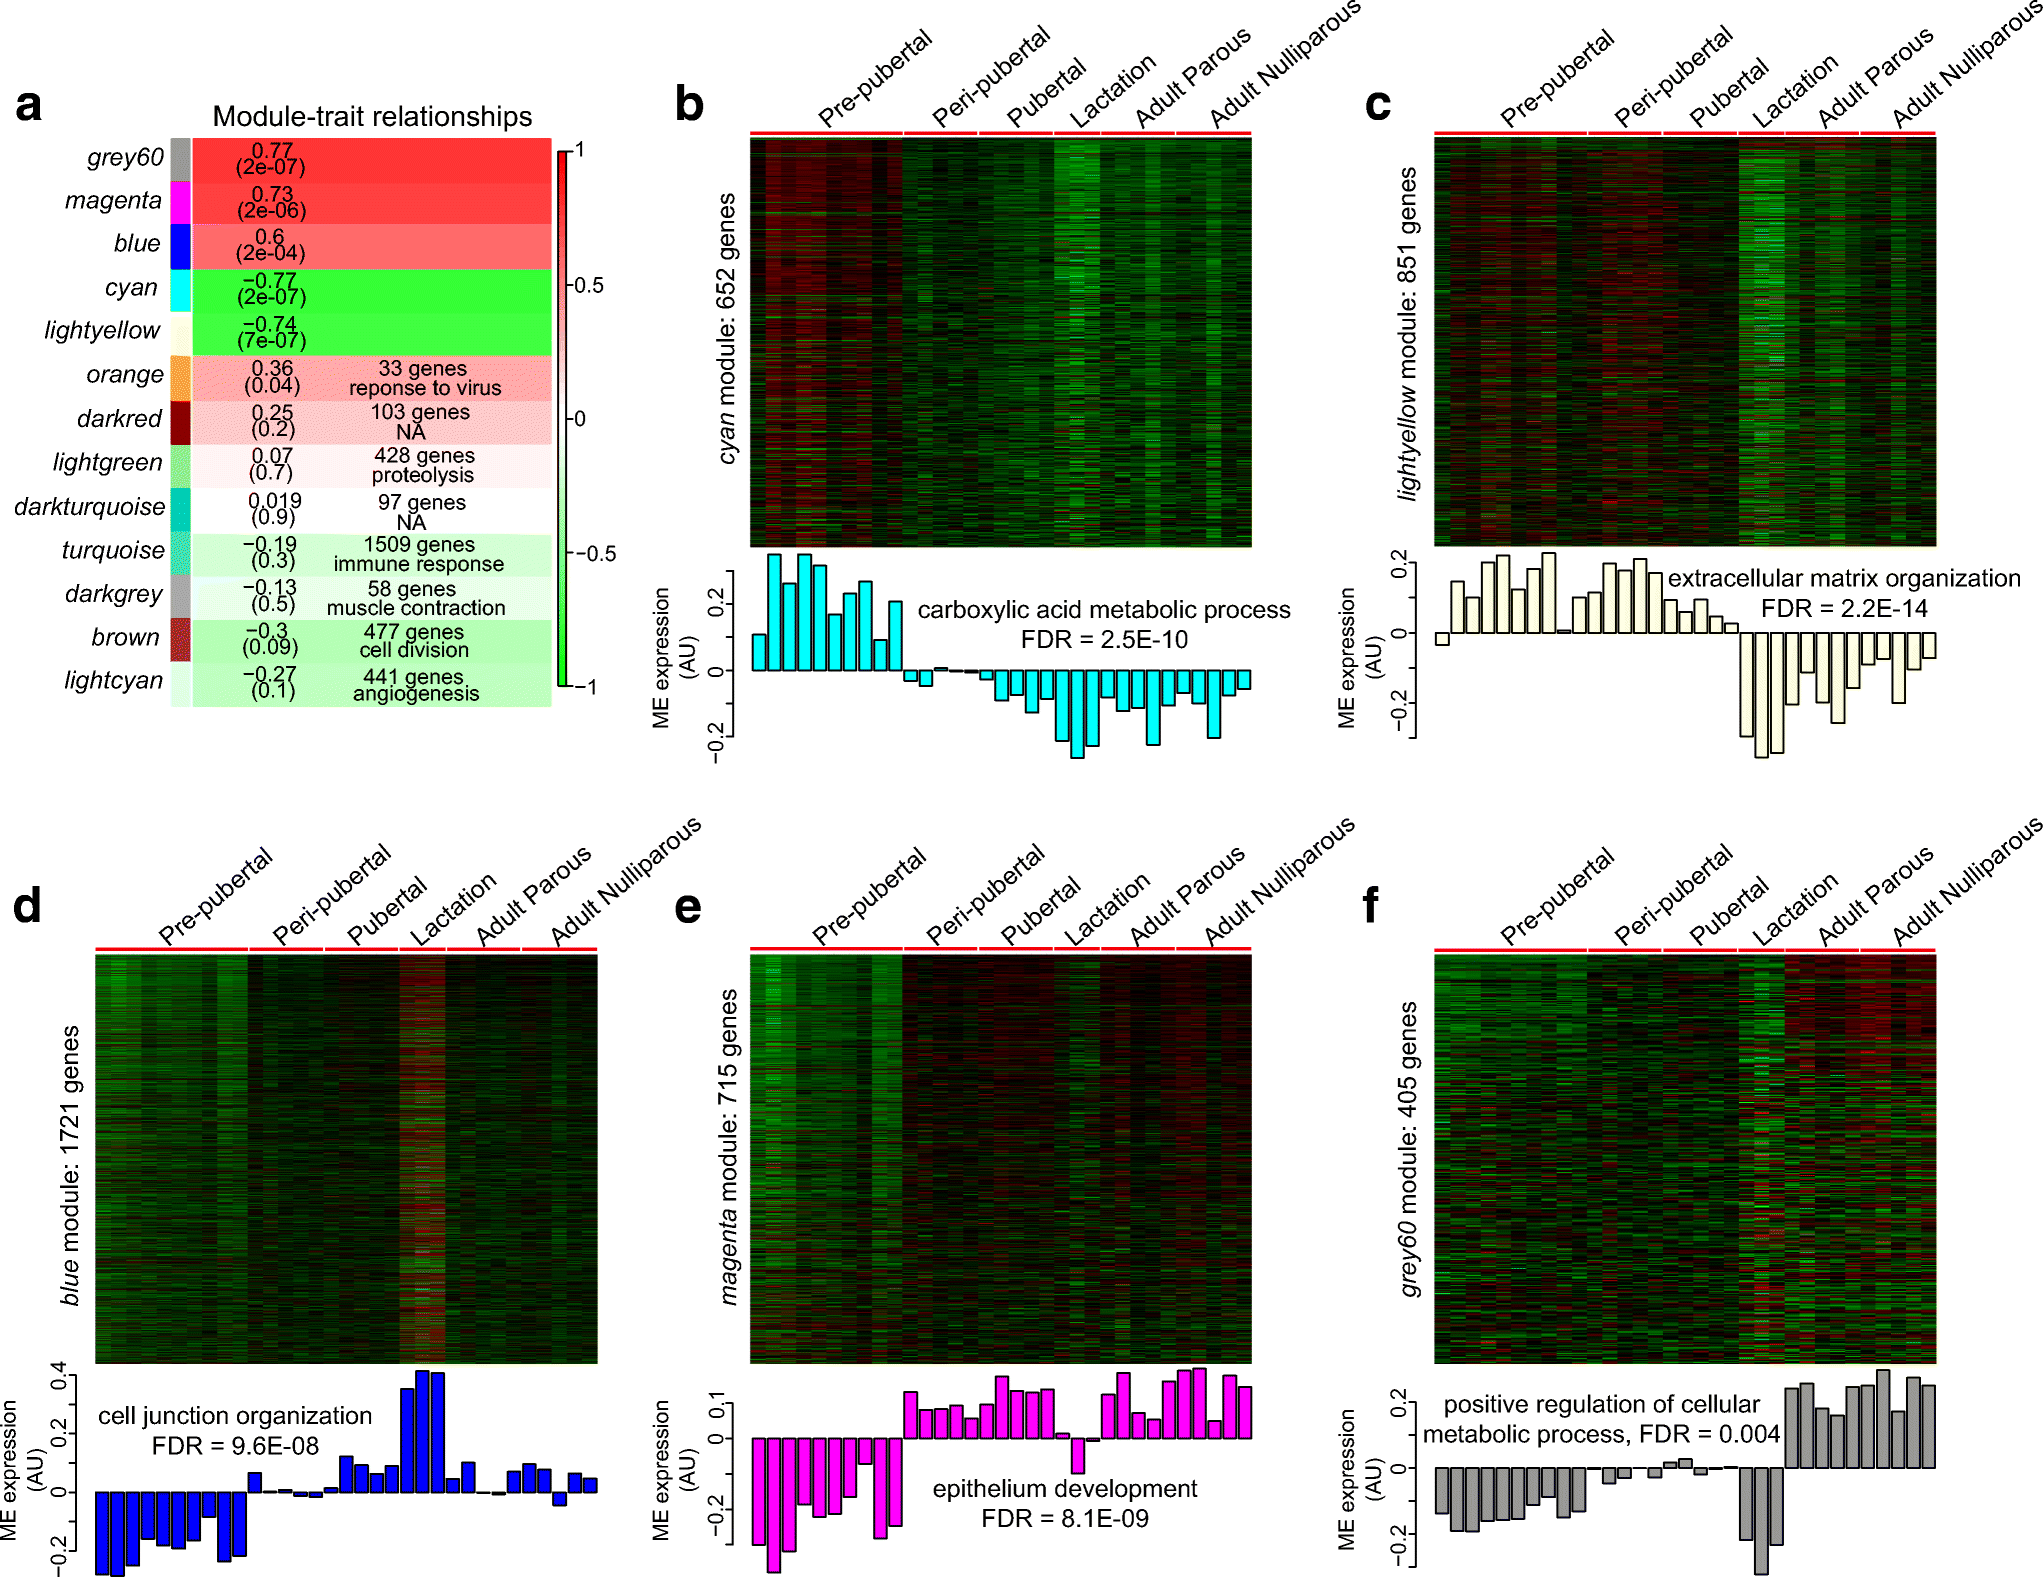 Histology and Transcriptome Profiles of the Mammary Gland across